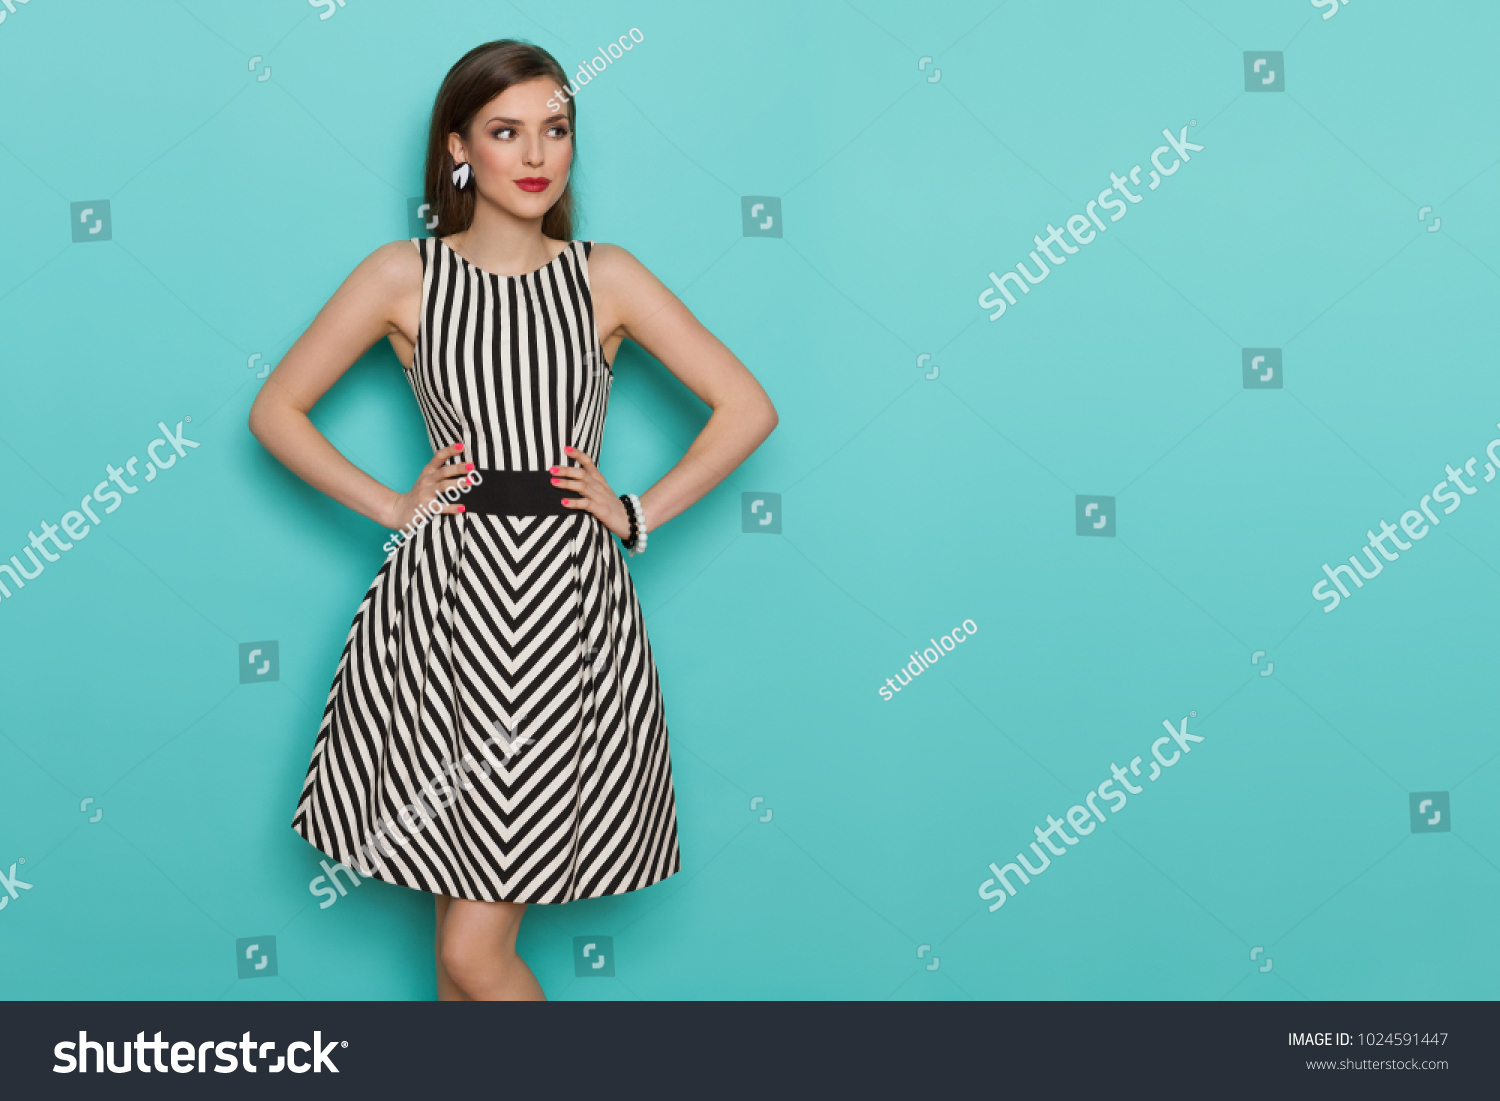 Charming fashion model in striped dress posing with hands on hip and looking away. Three quarter length studio shot on turquoise background. #1024591447